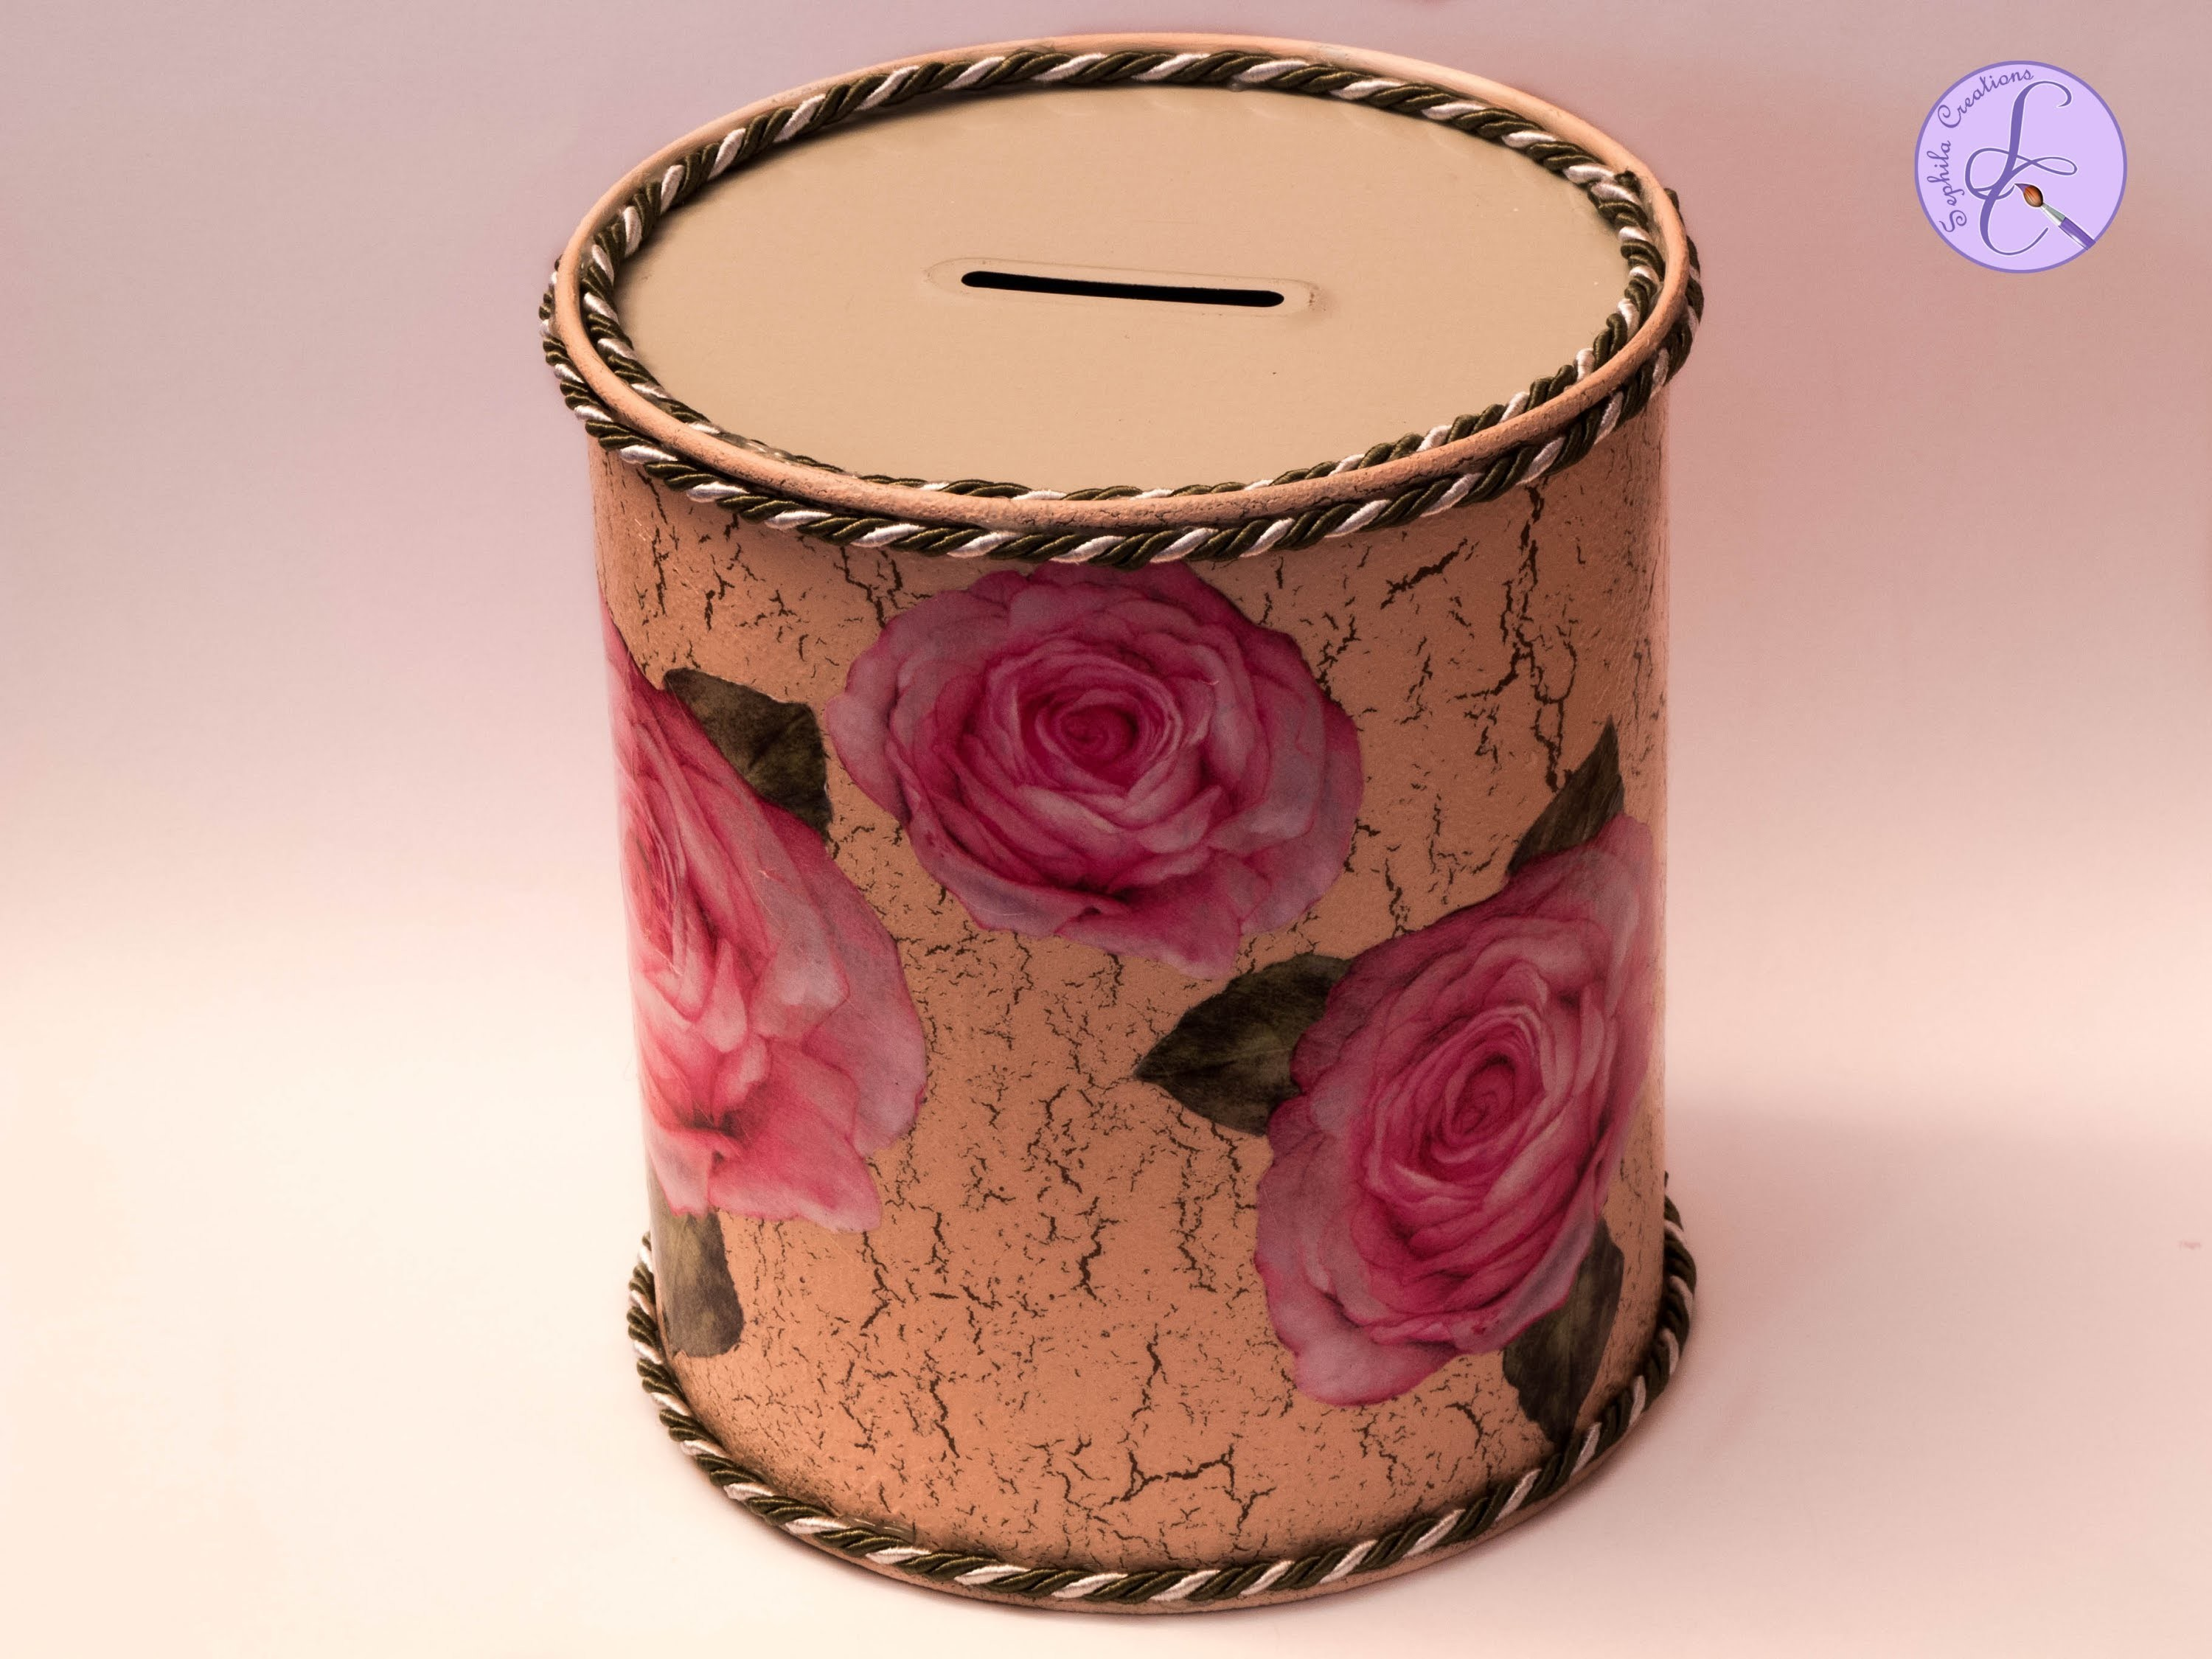 Tutorial: Salvadanaio di metallo con decoupage e cracklè (metal money box) [eng-sub]